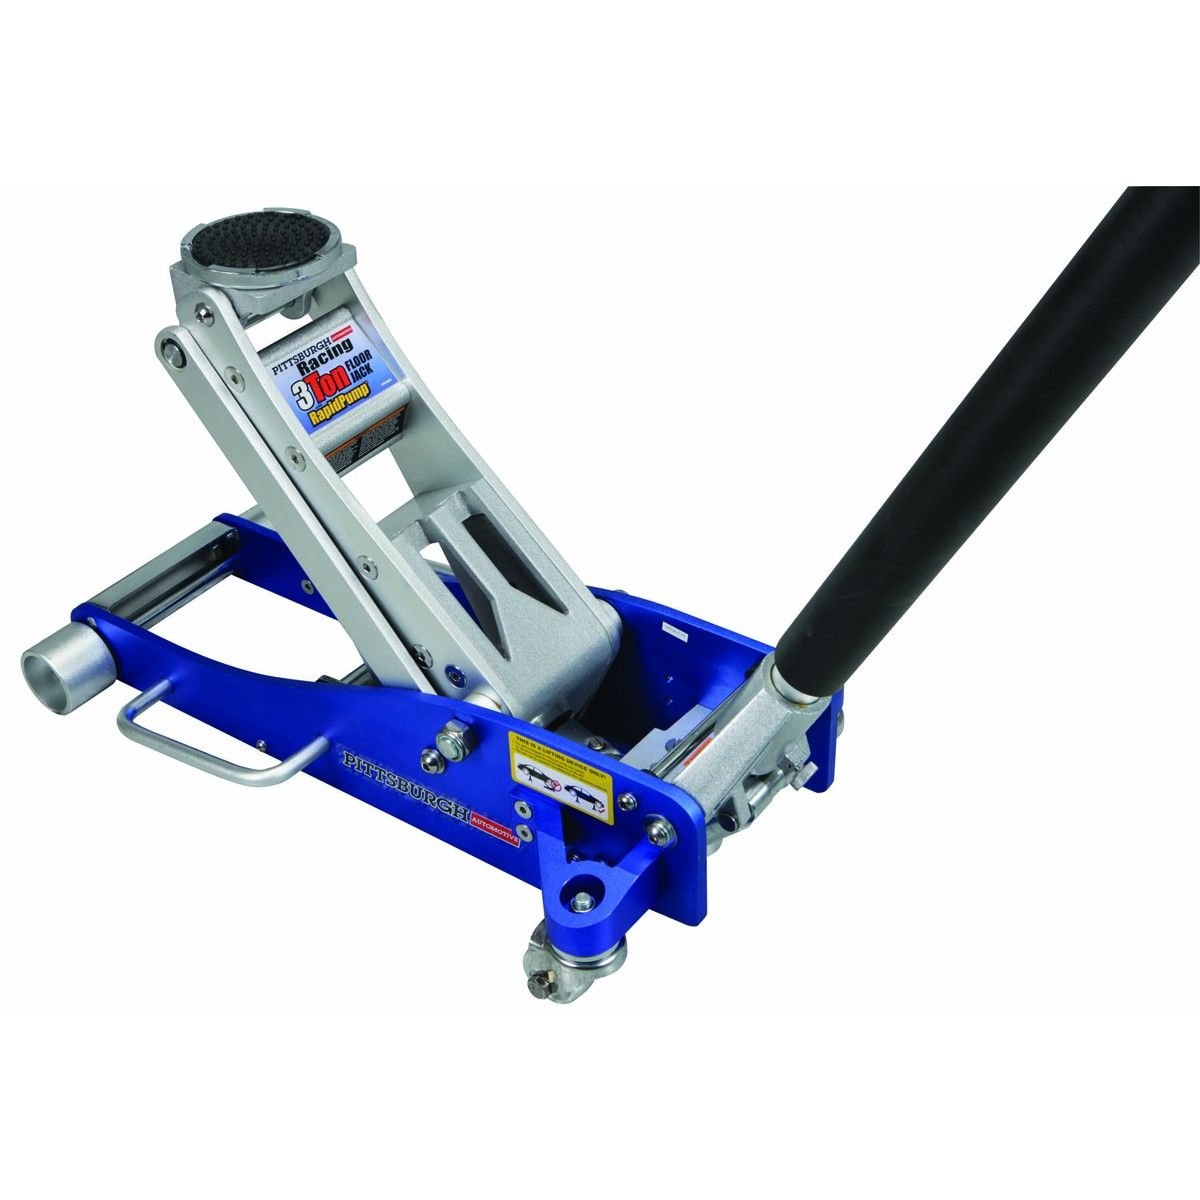 3 Ton Aluminum Racing Floor Jack with RapidPump ...